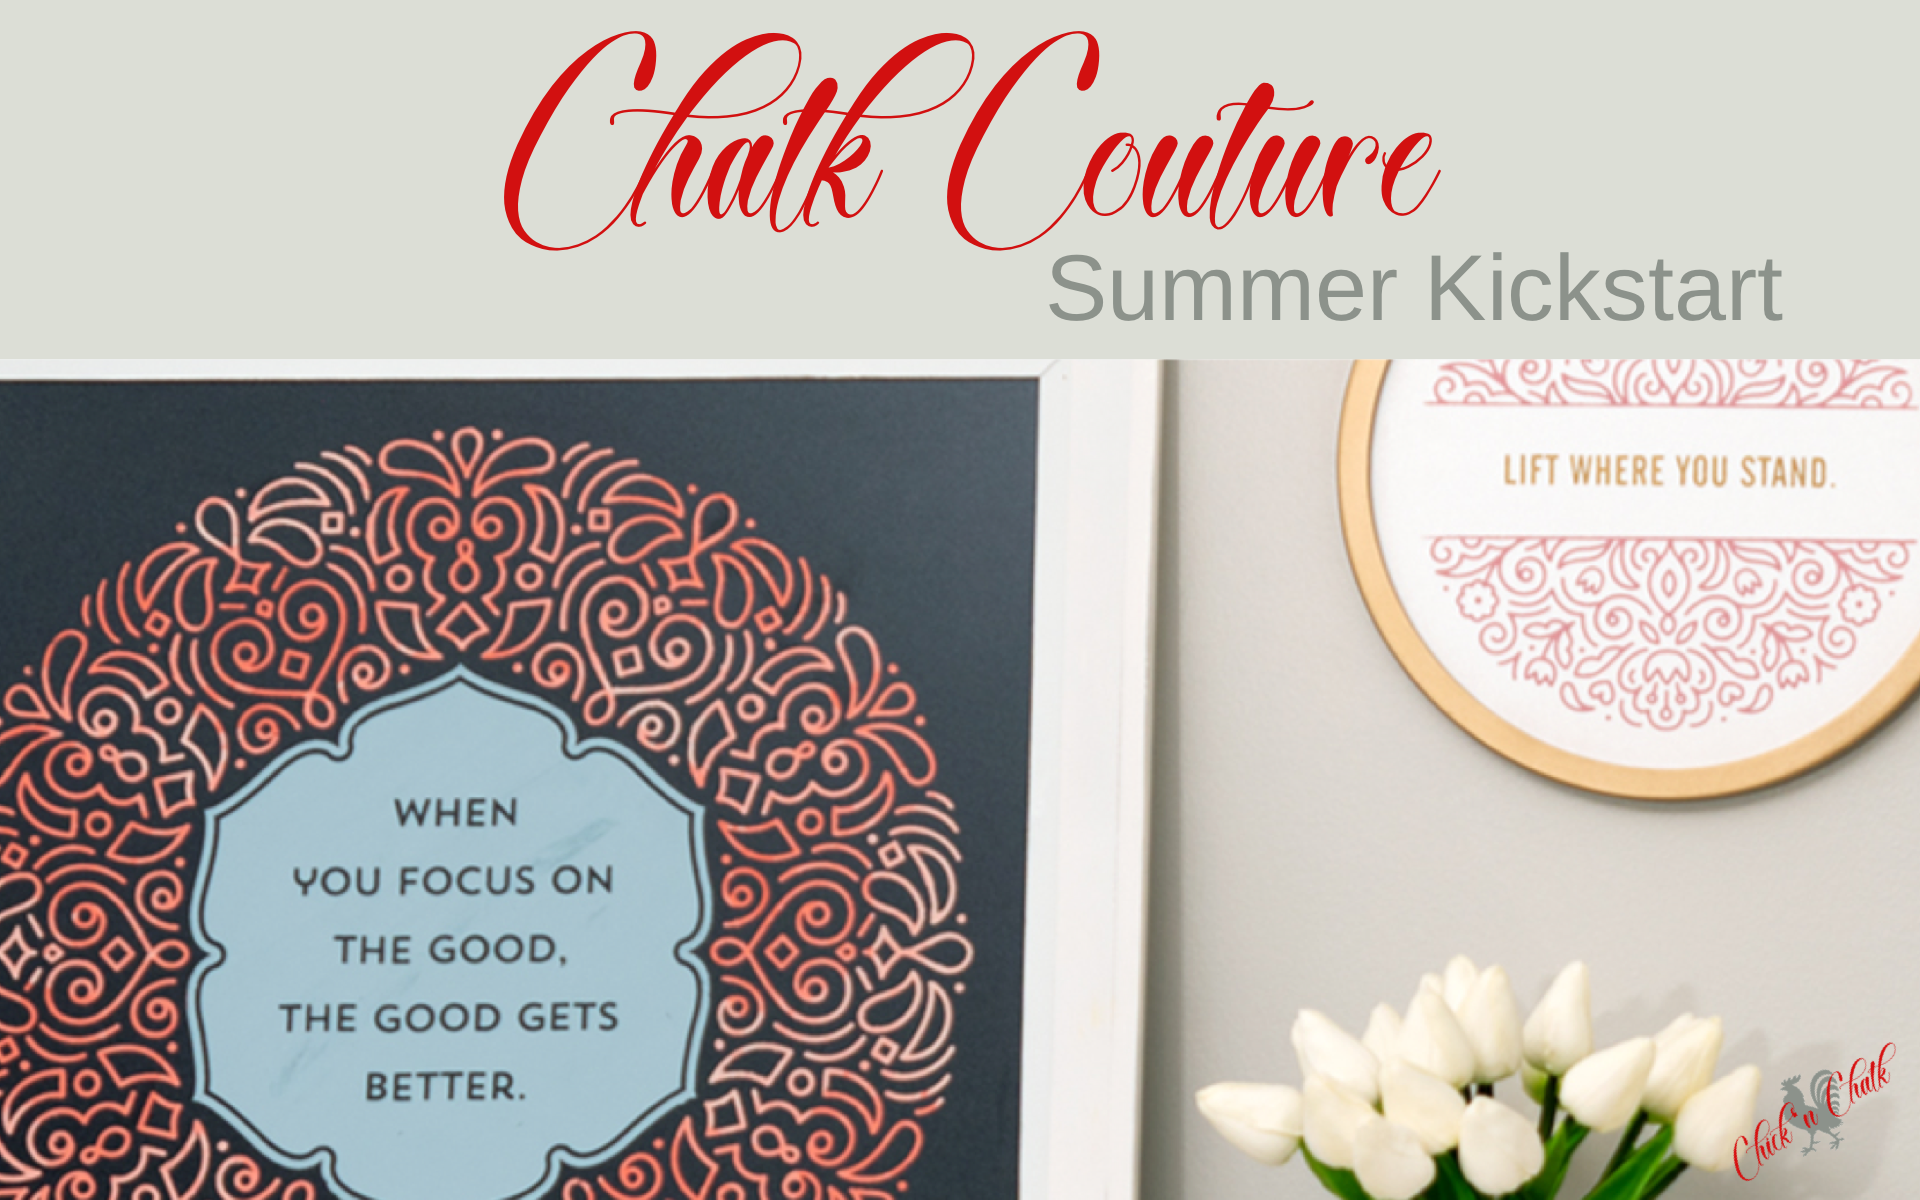 Chalk couture summer creative kickstart